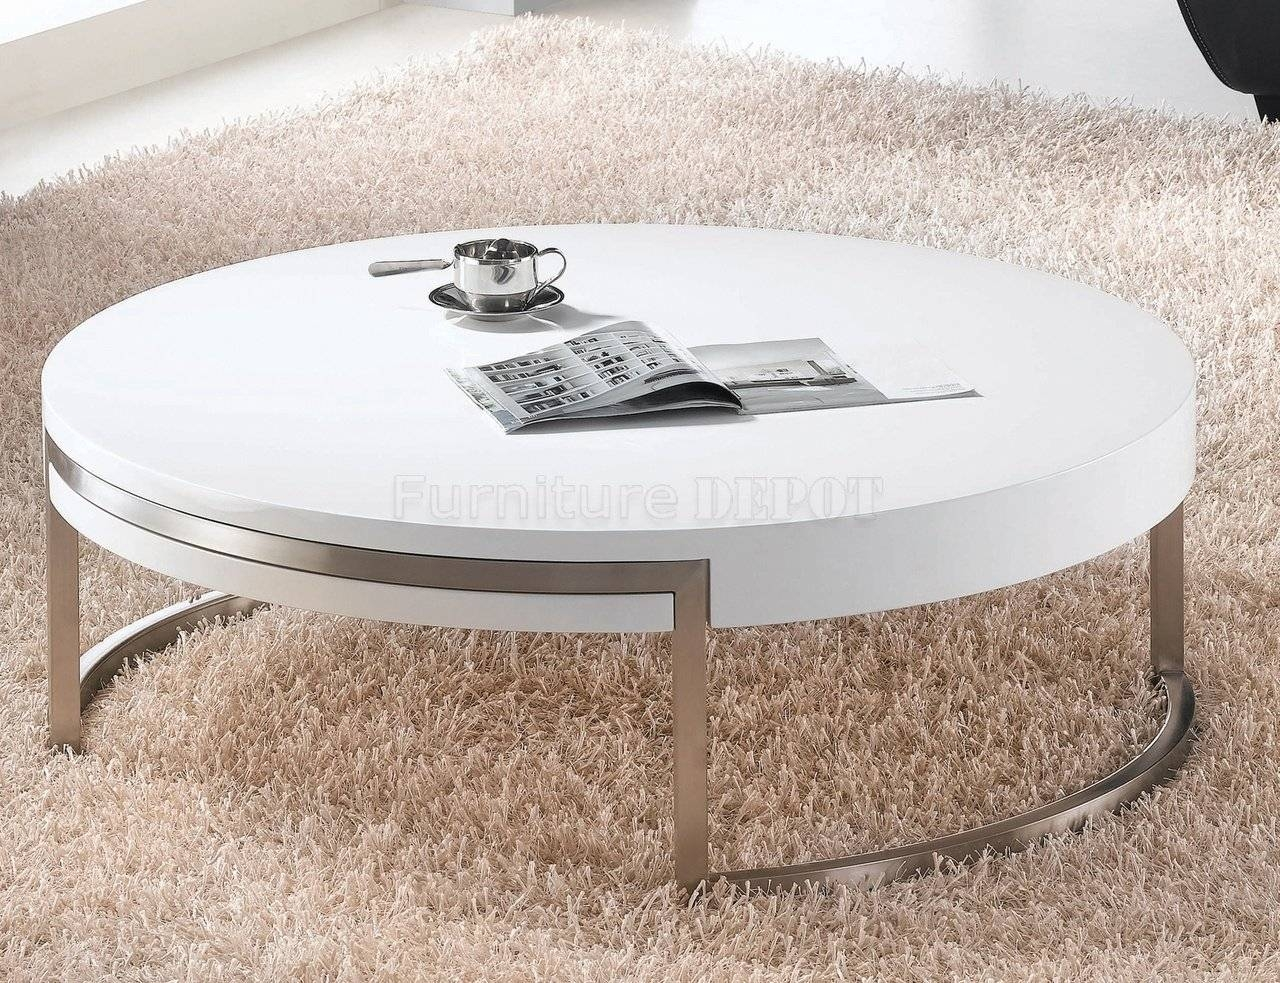 White High Gloss Round Coffee Table - Starrkingschool inside White High Gloss Coffee Tables (Image 30 of 30)